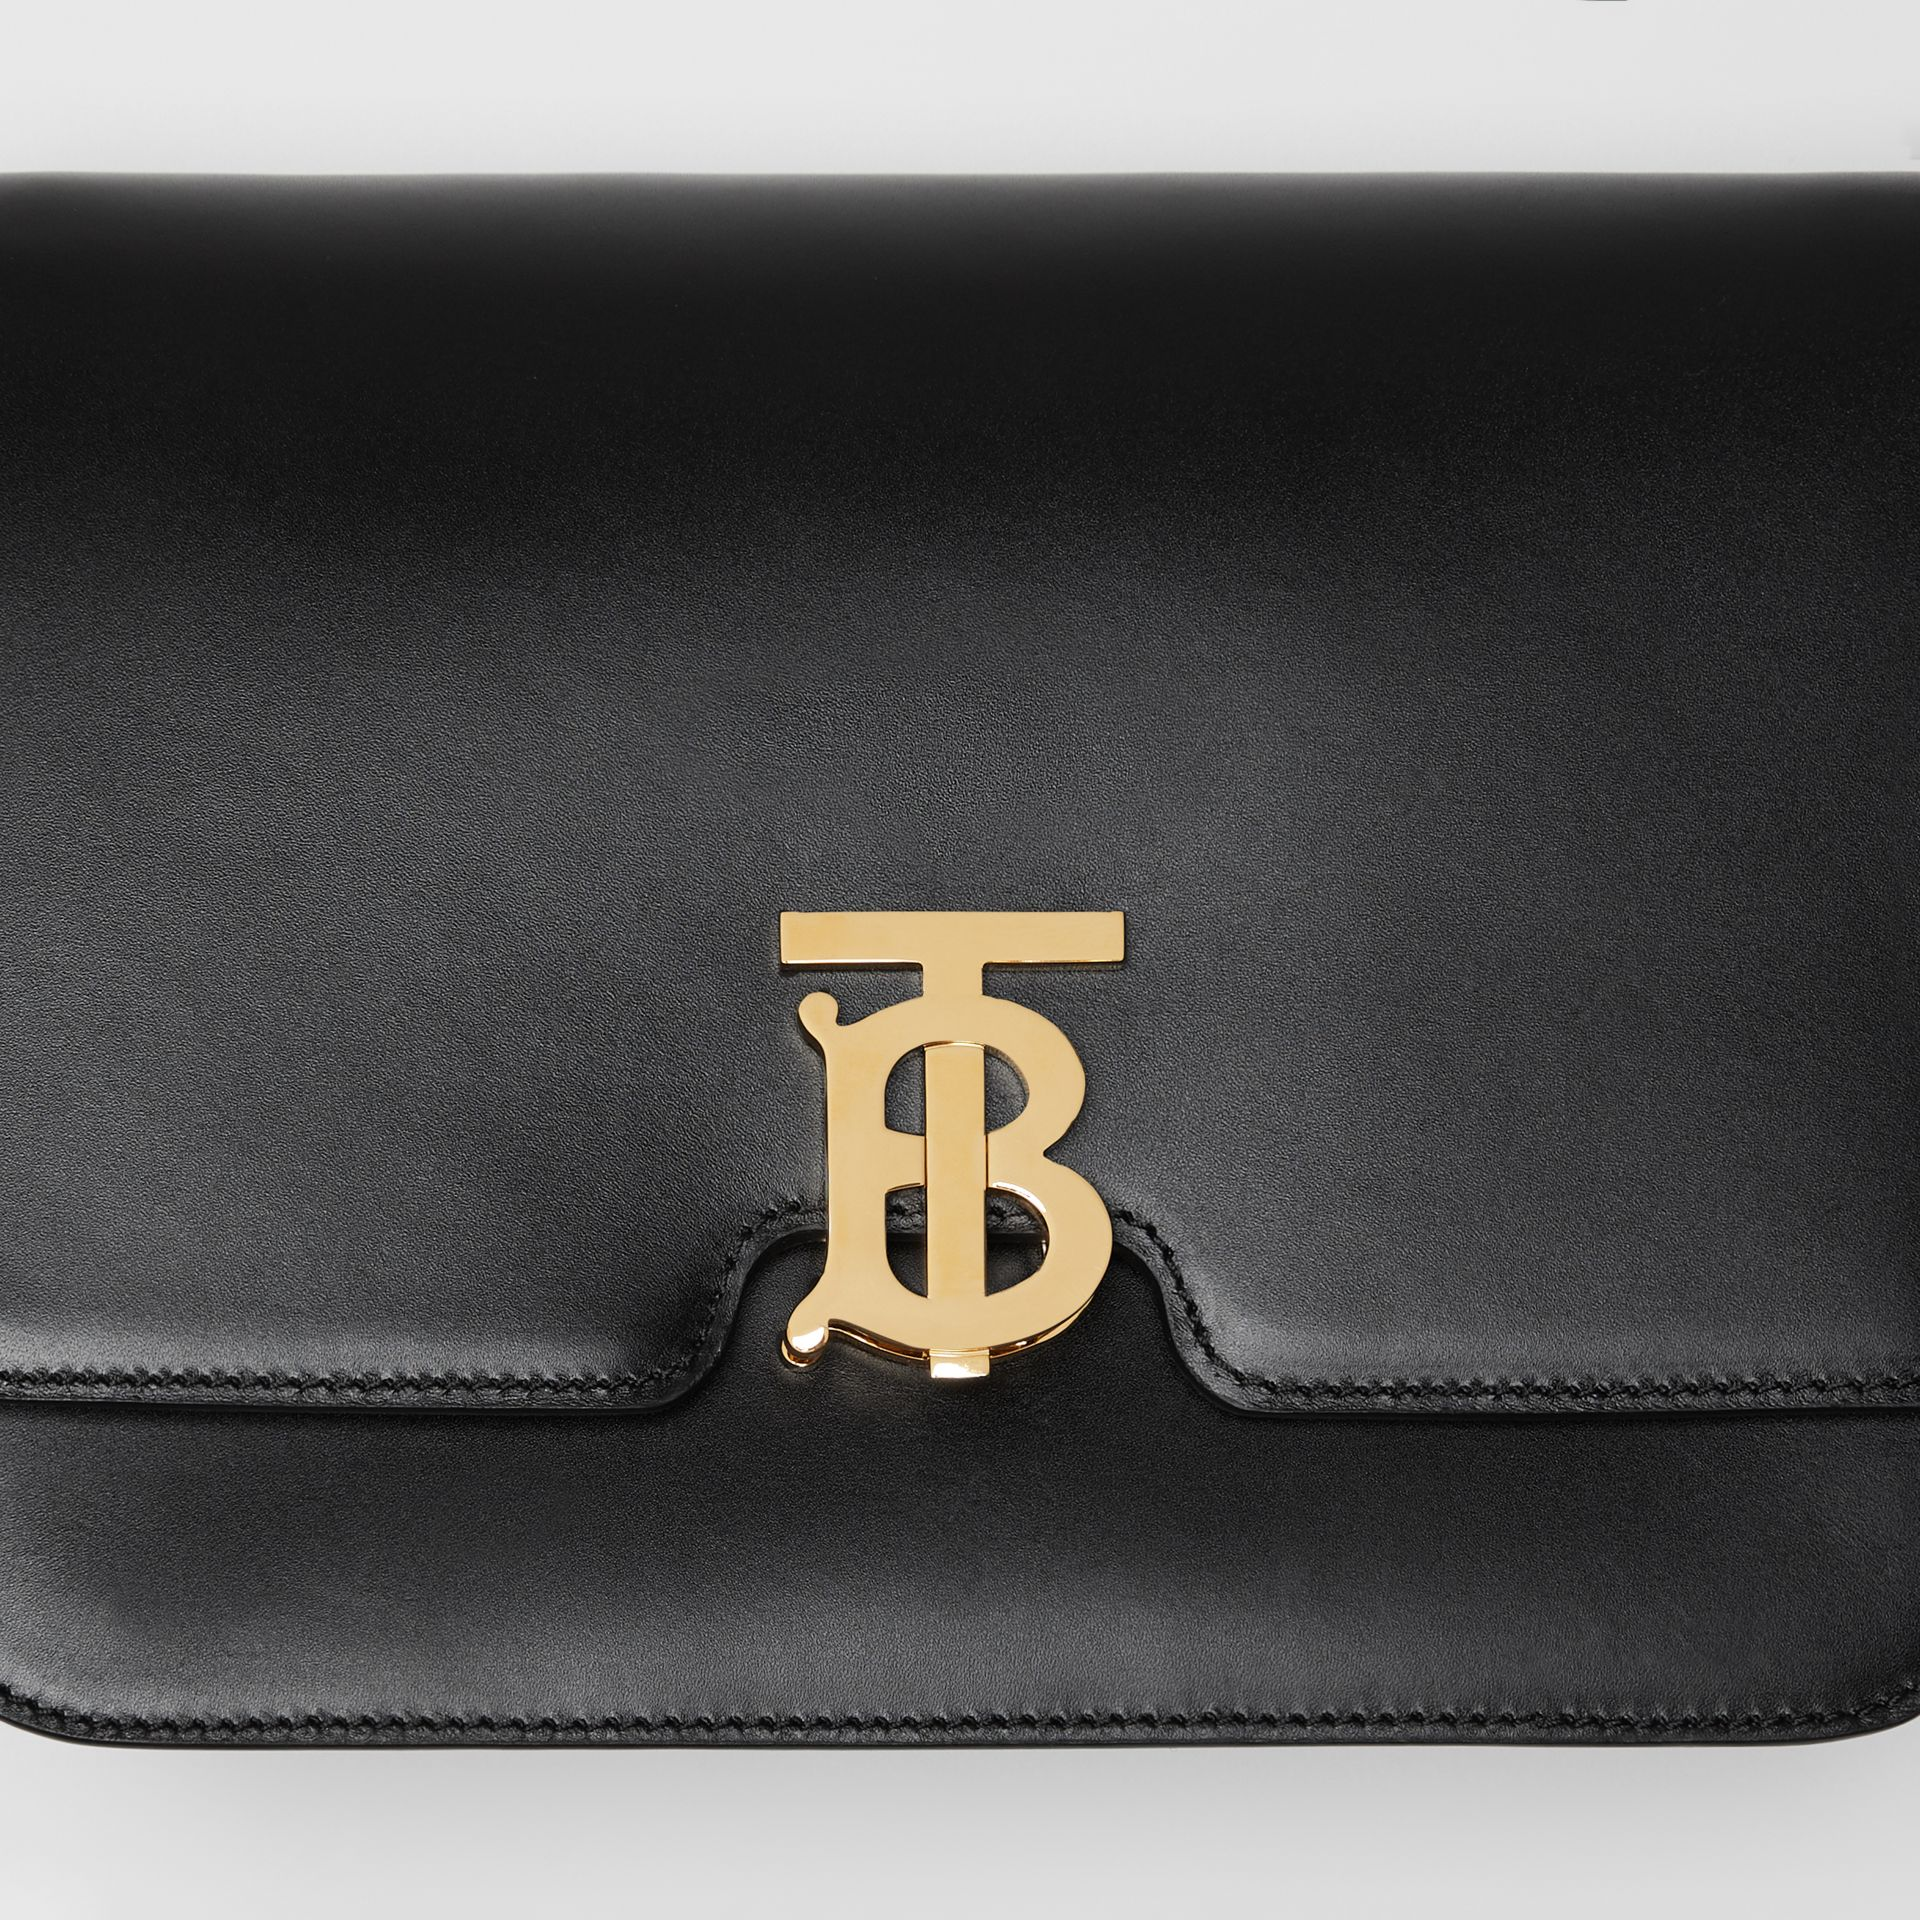 Medium Leather TB Bag in Black - Women | Burberry Hong Kong S.A.R. - gallery image 8